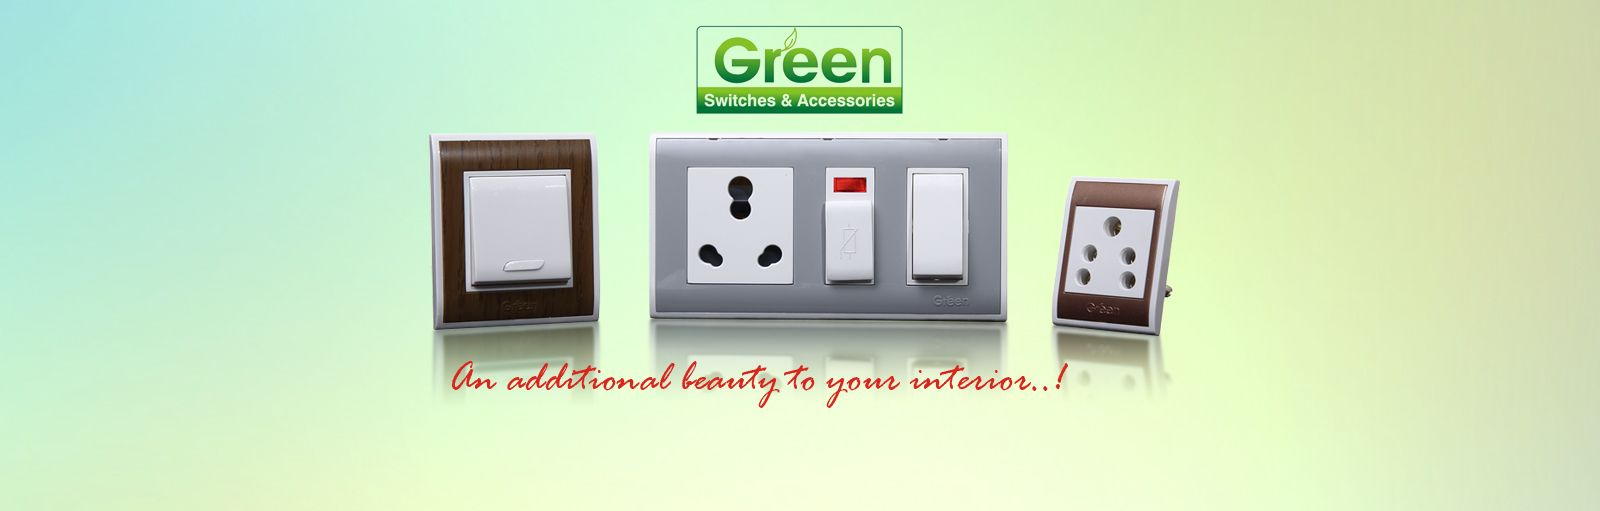 7 best Electrical Switch Manufacturers and Exporters India images ...